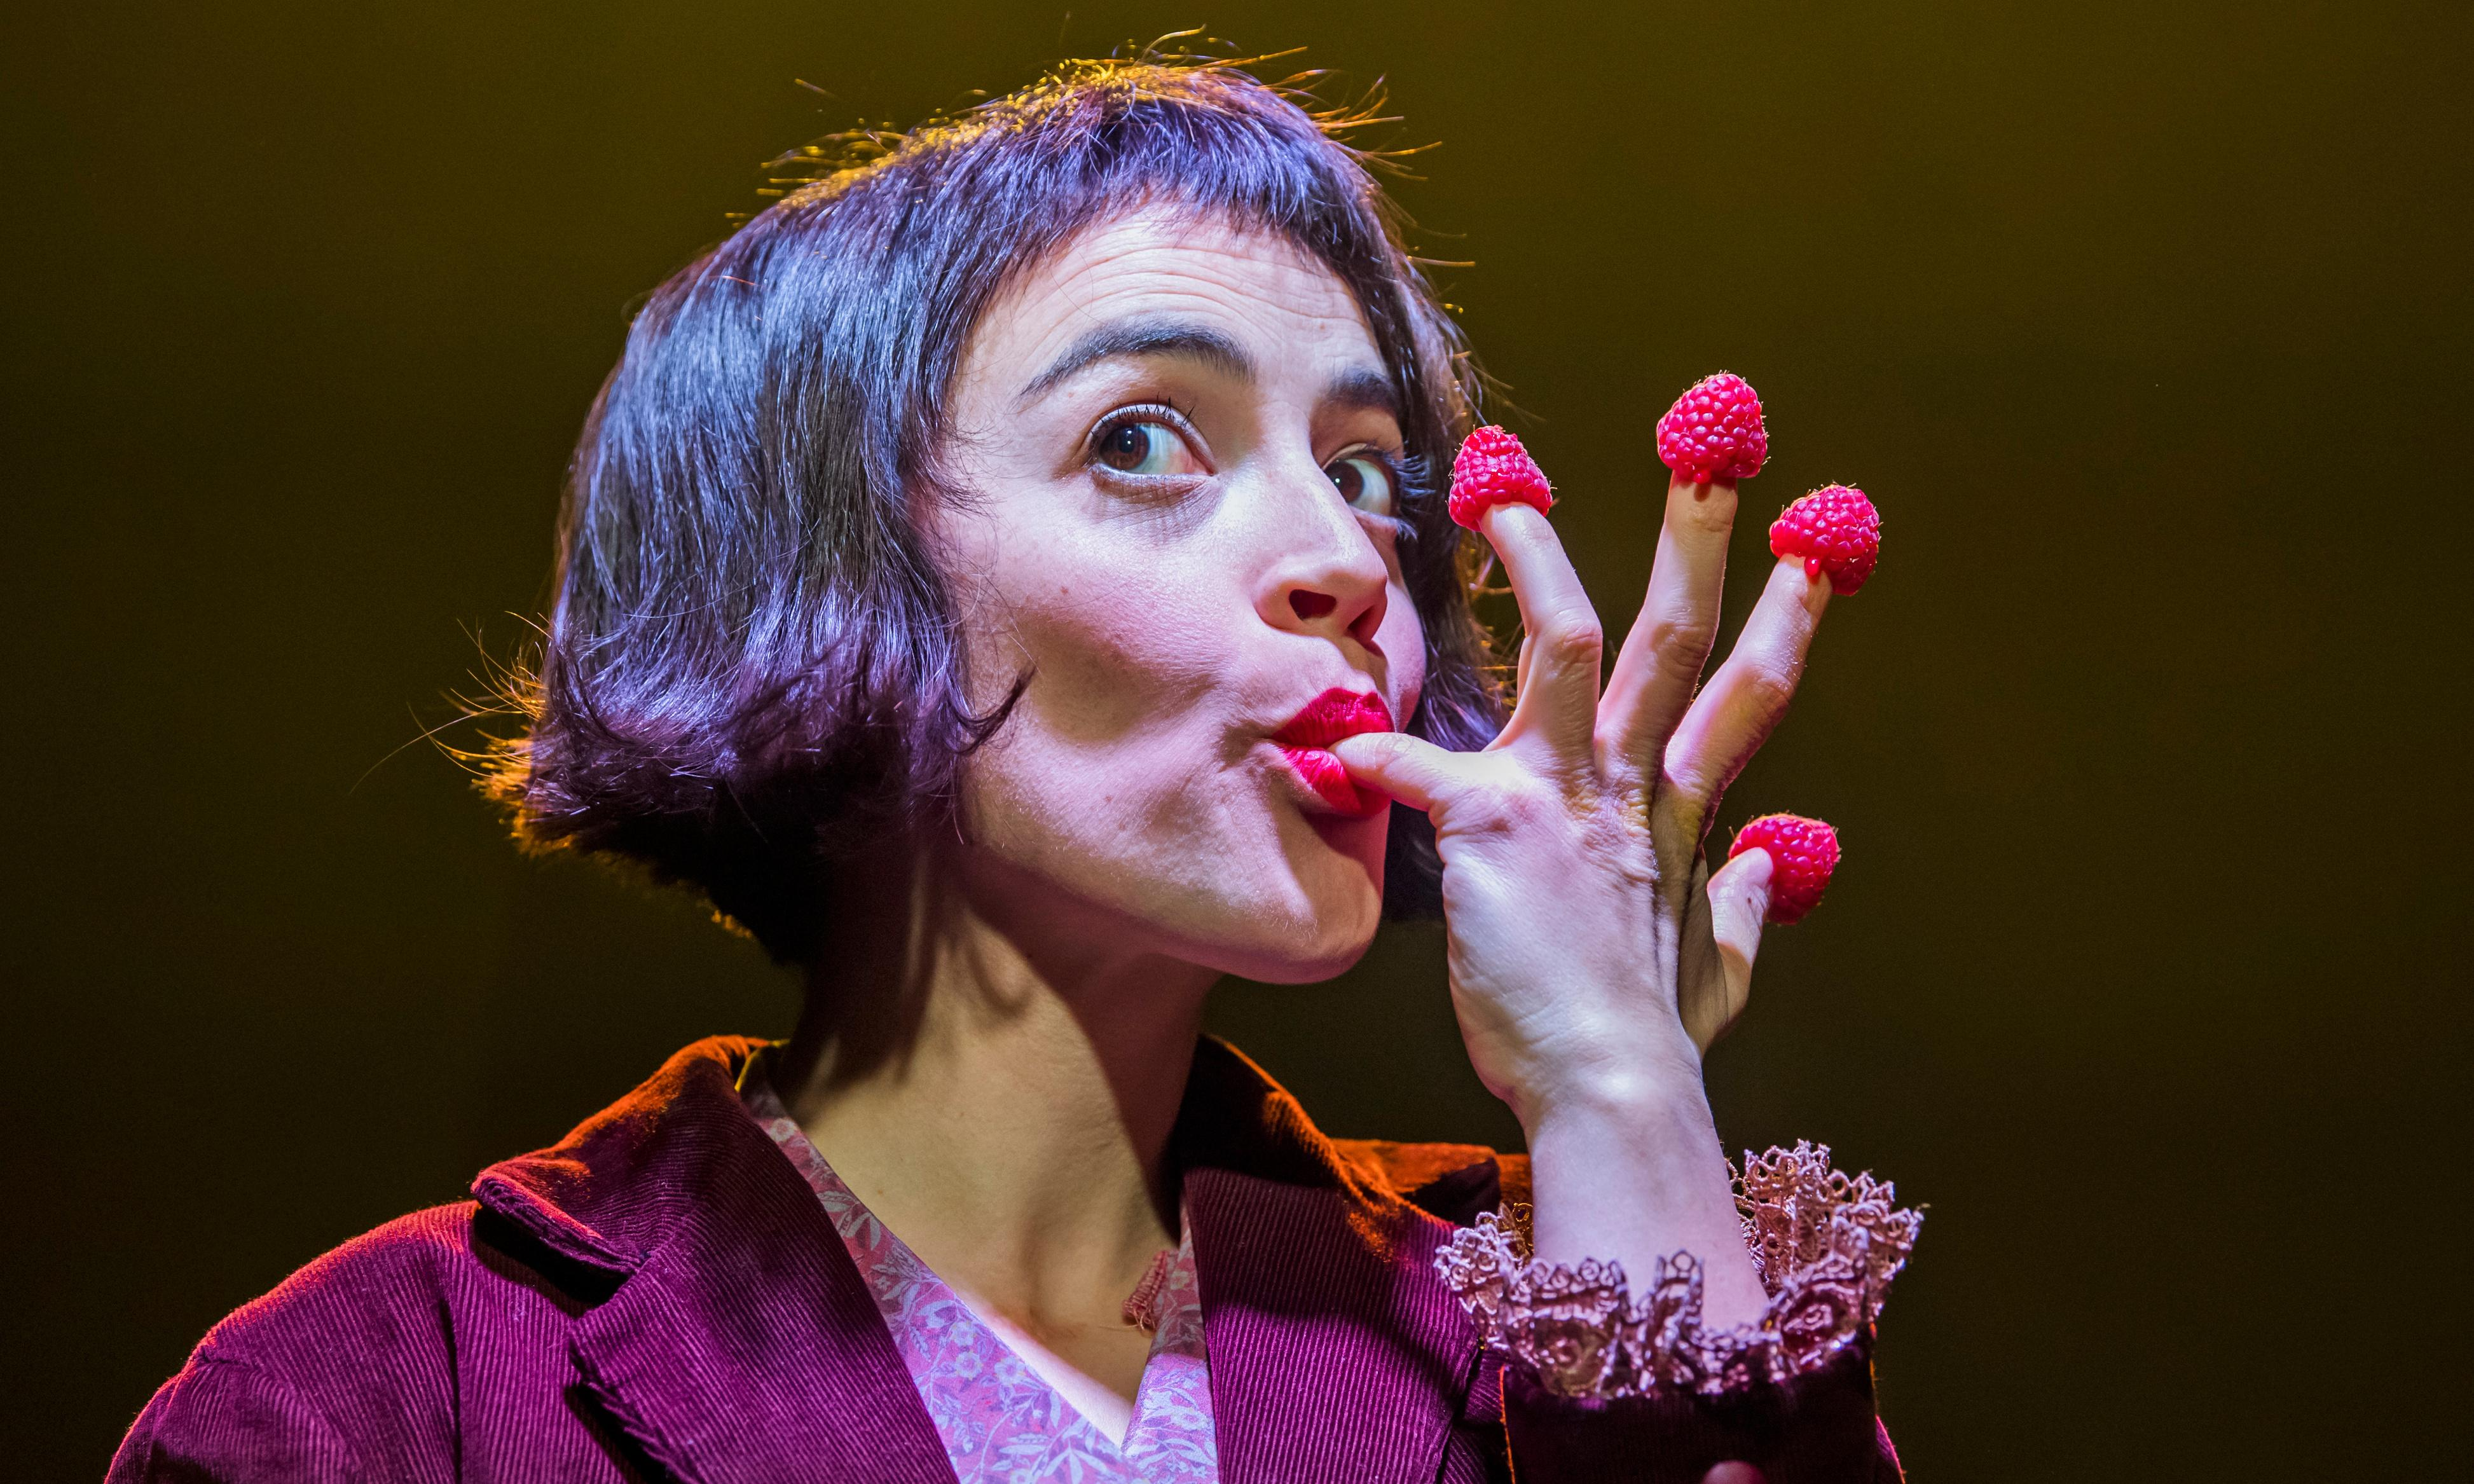 Amélie the Musical review – sepia-toned surrealism that's high on imagination